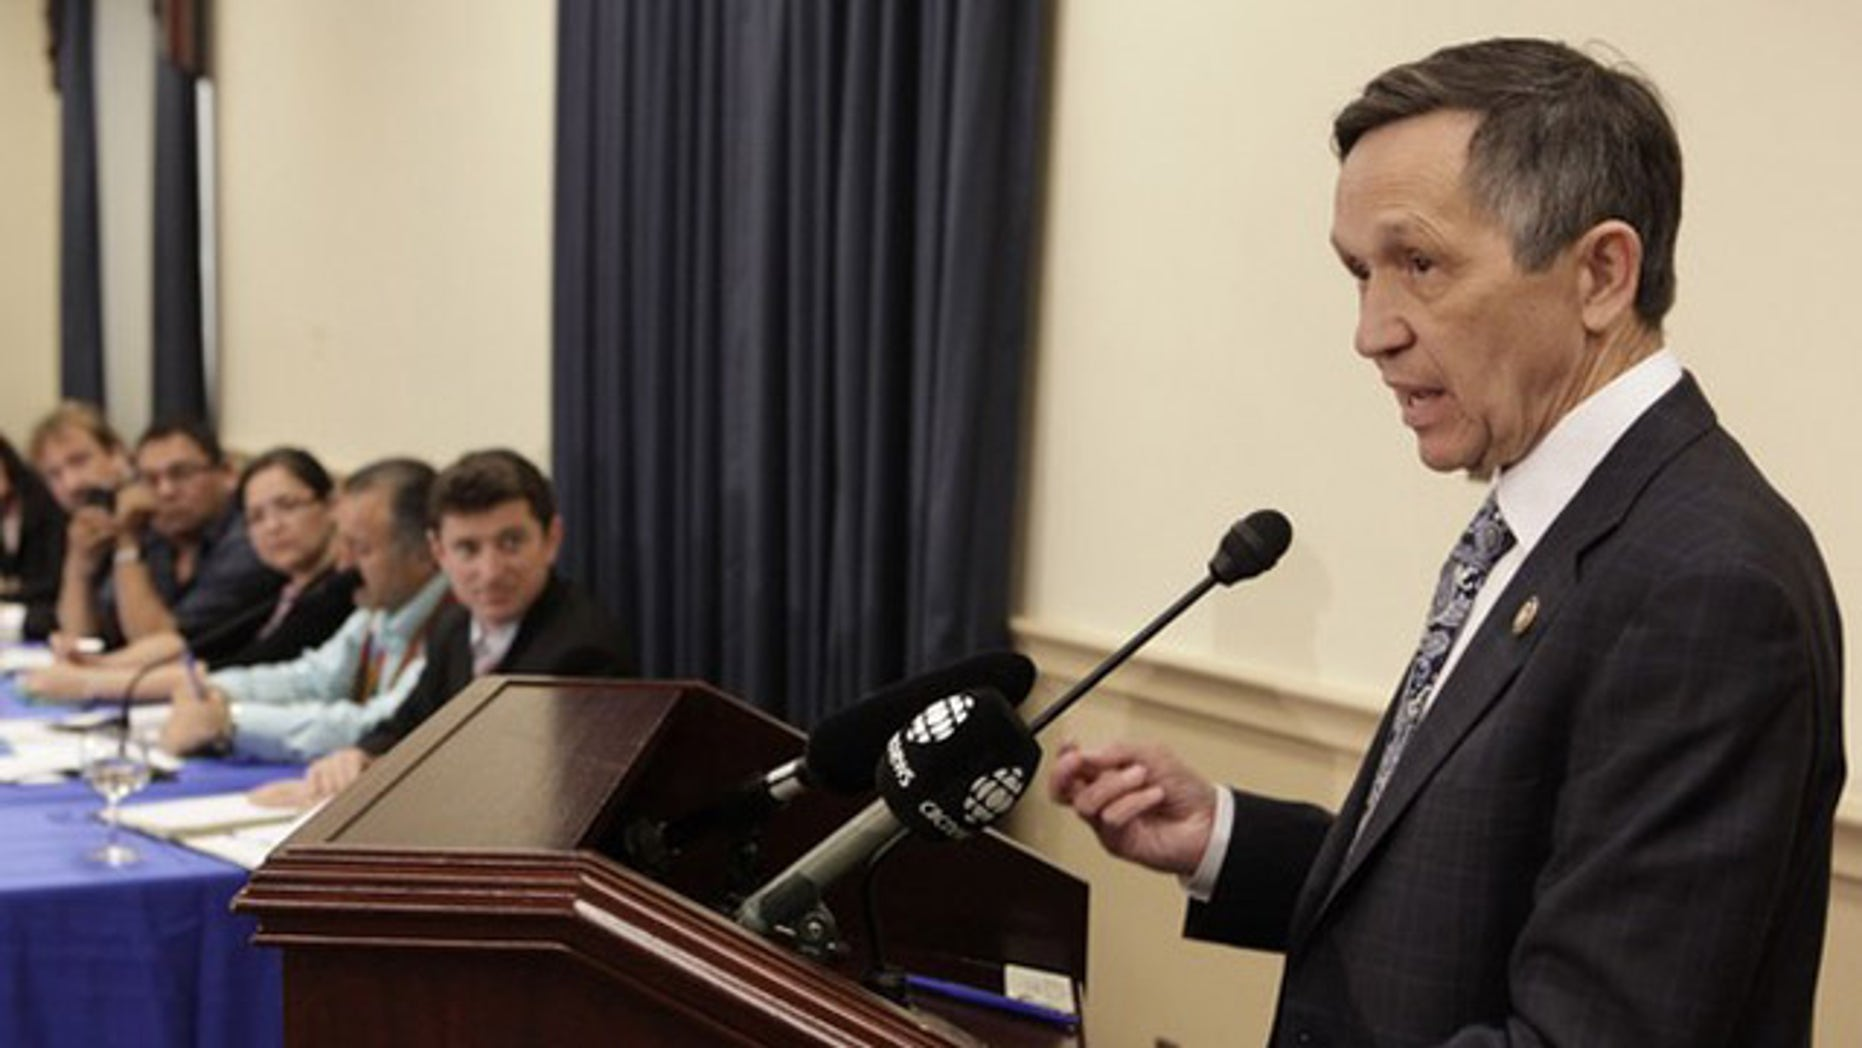 Rep. Dennis Kucinich speaks during a briefing on Capitol Hill May 26.